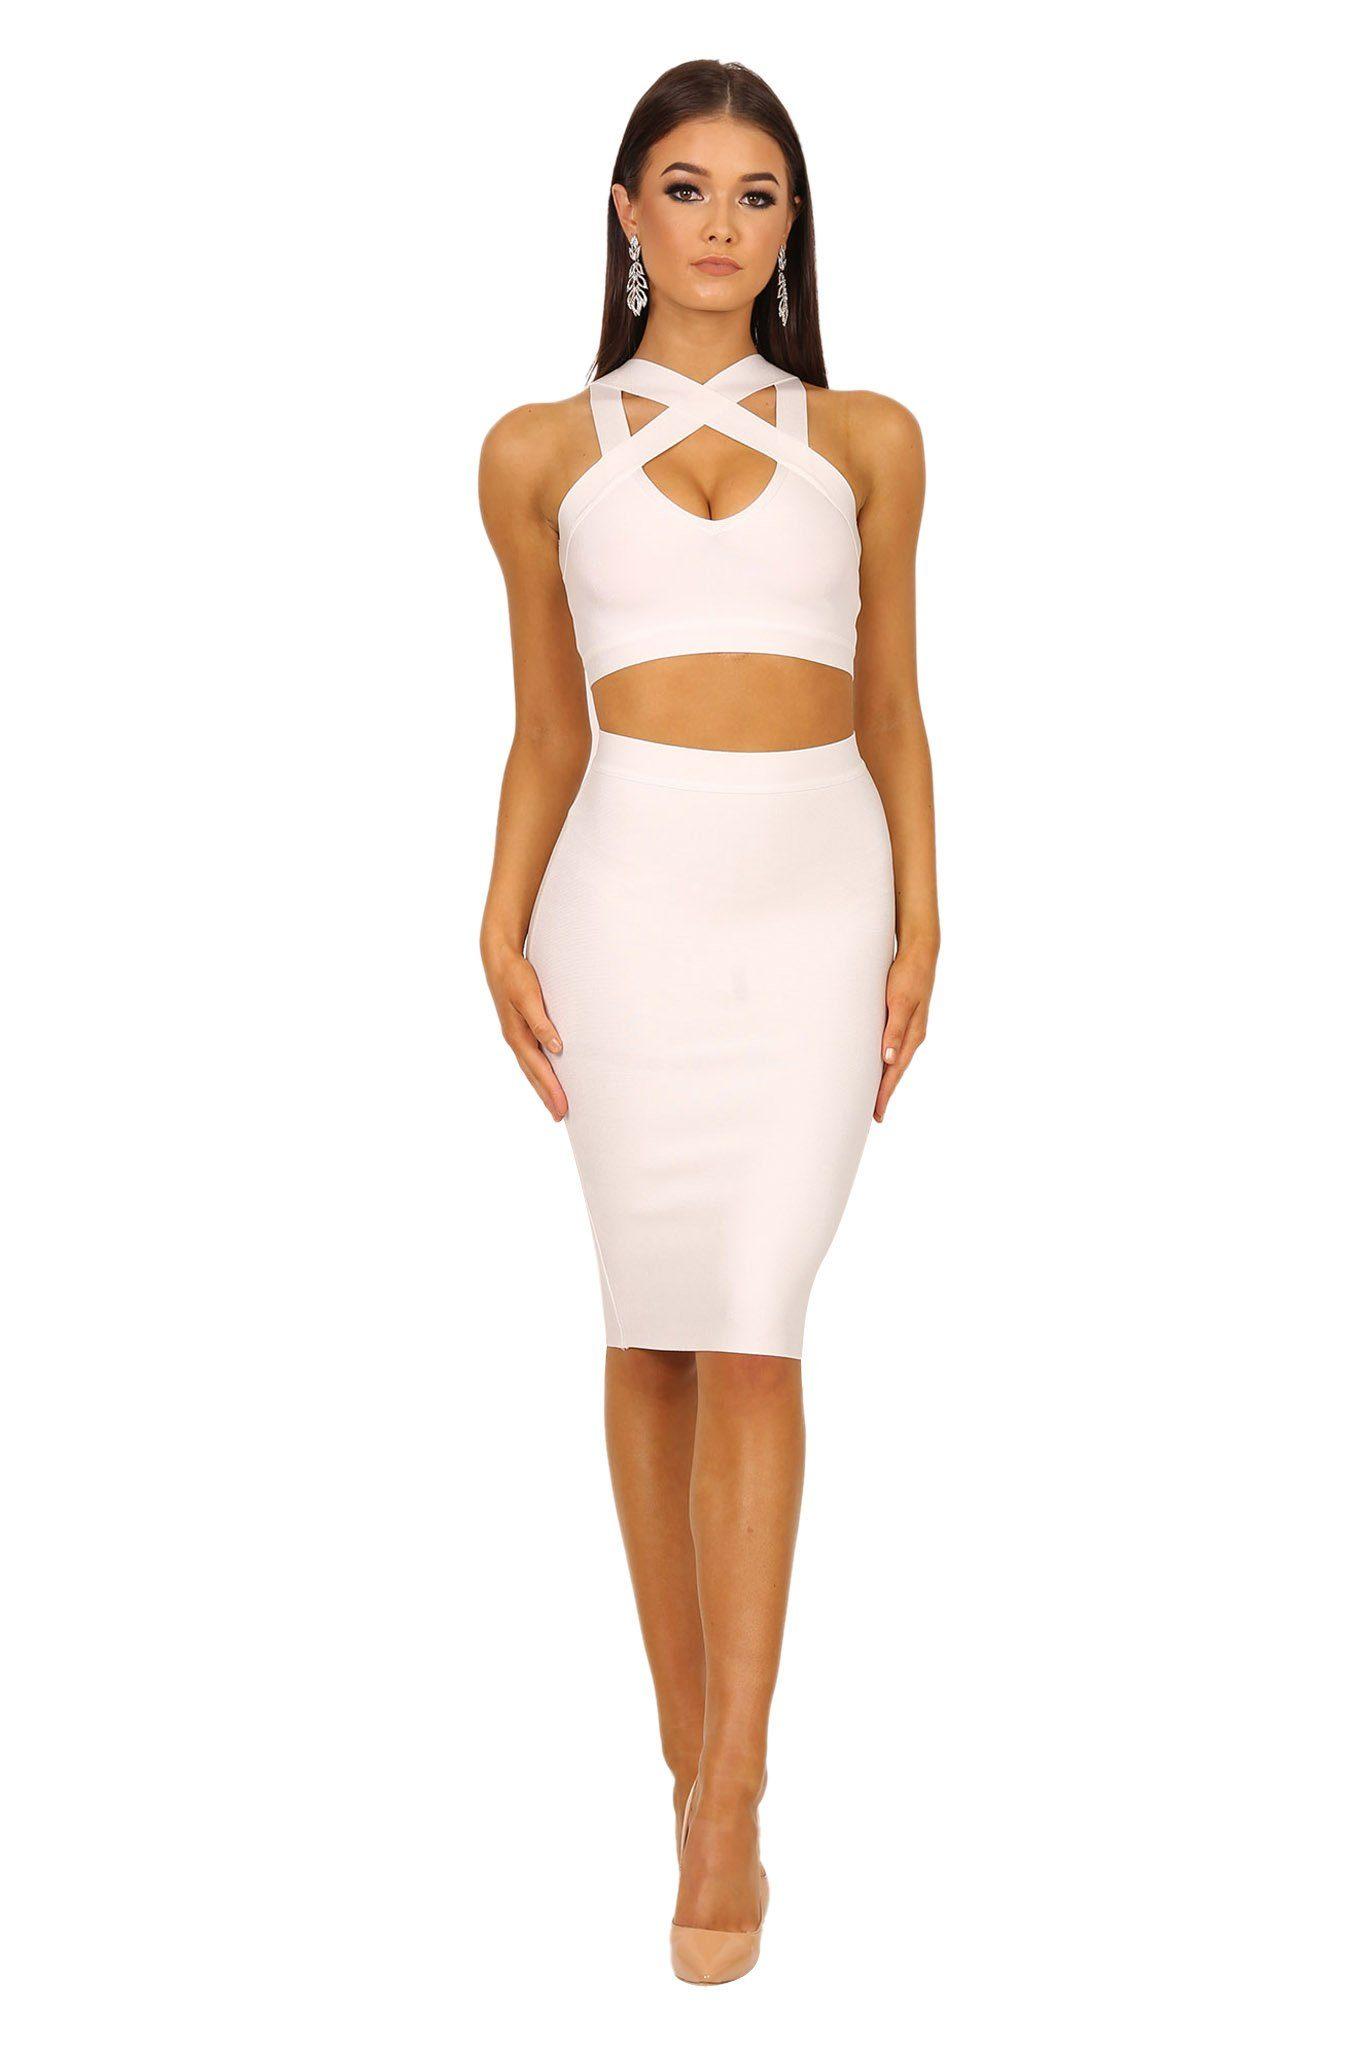 Two-piece bandage set in white color including a bandage crop top with peephole at bust and a midi length bandage pencil skirt